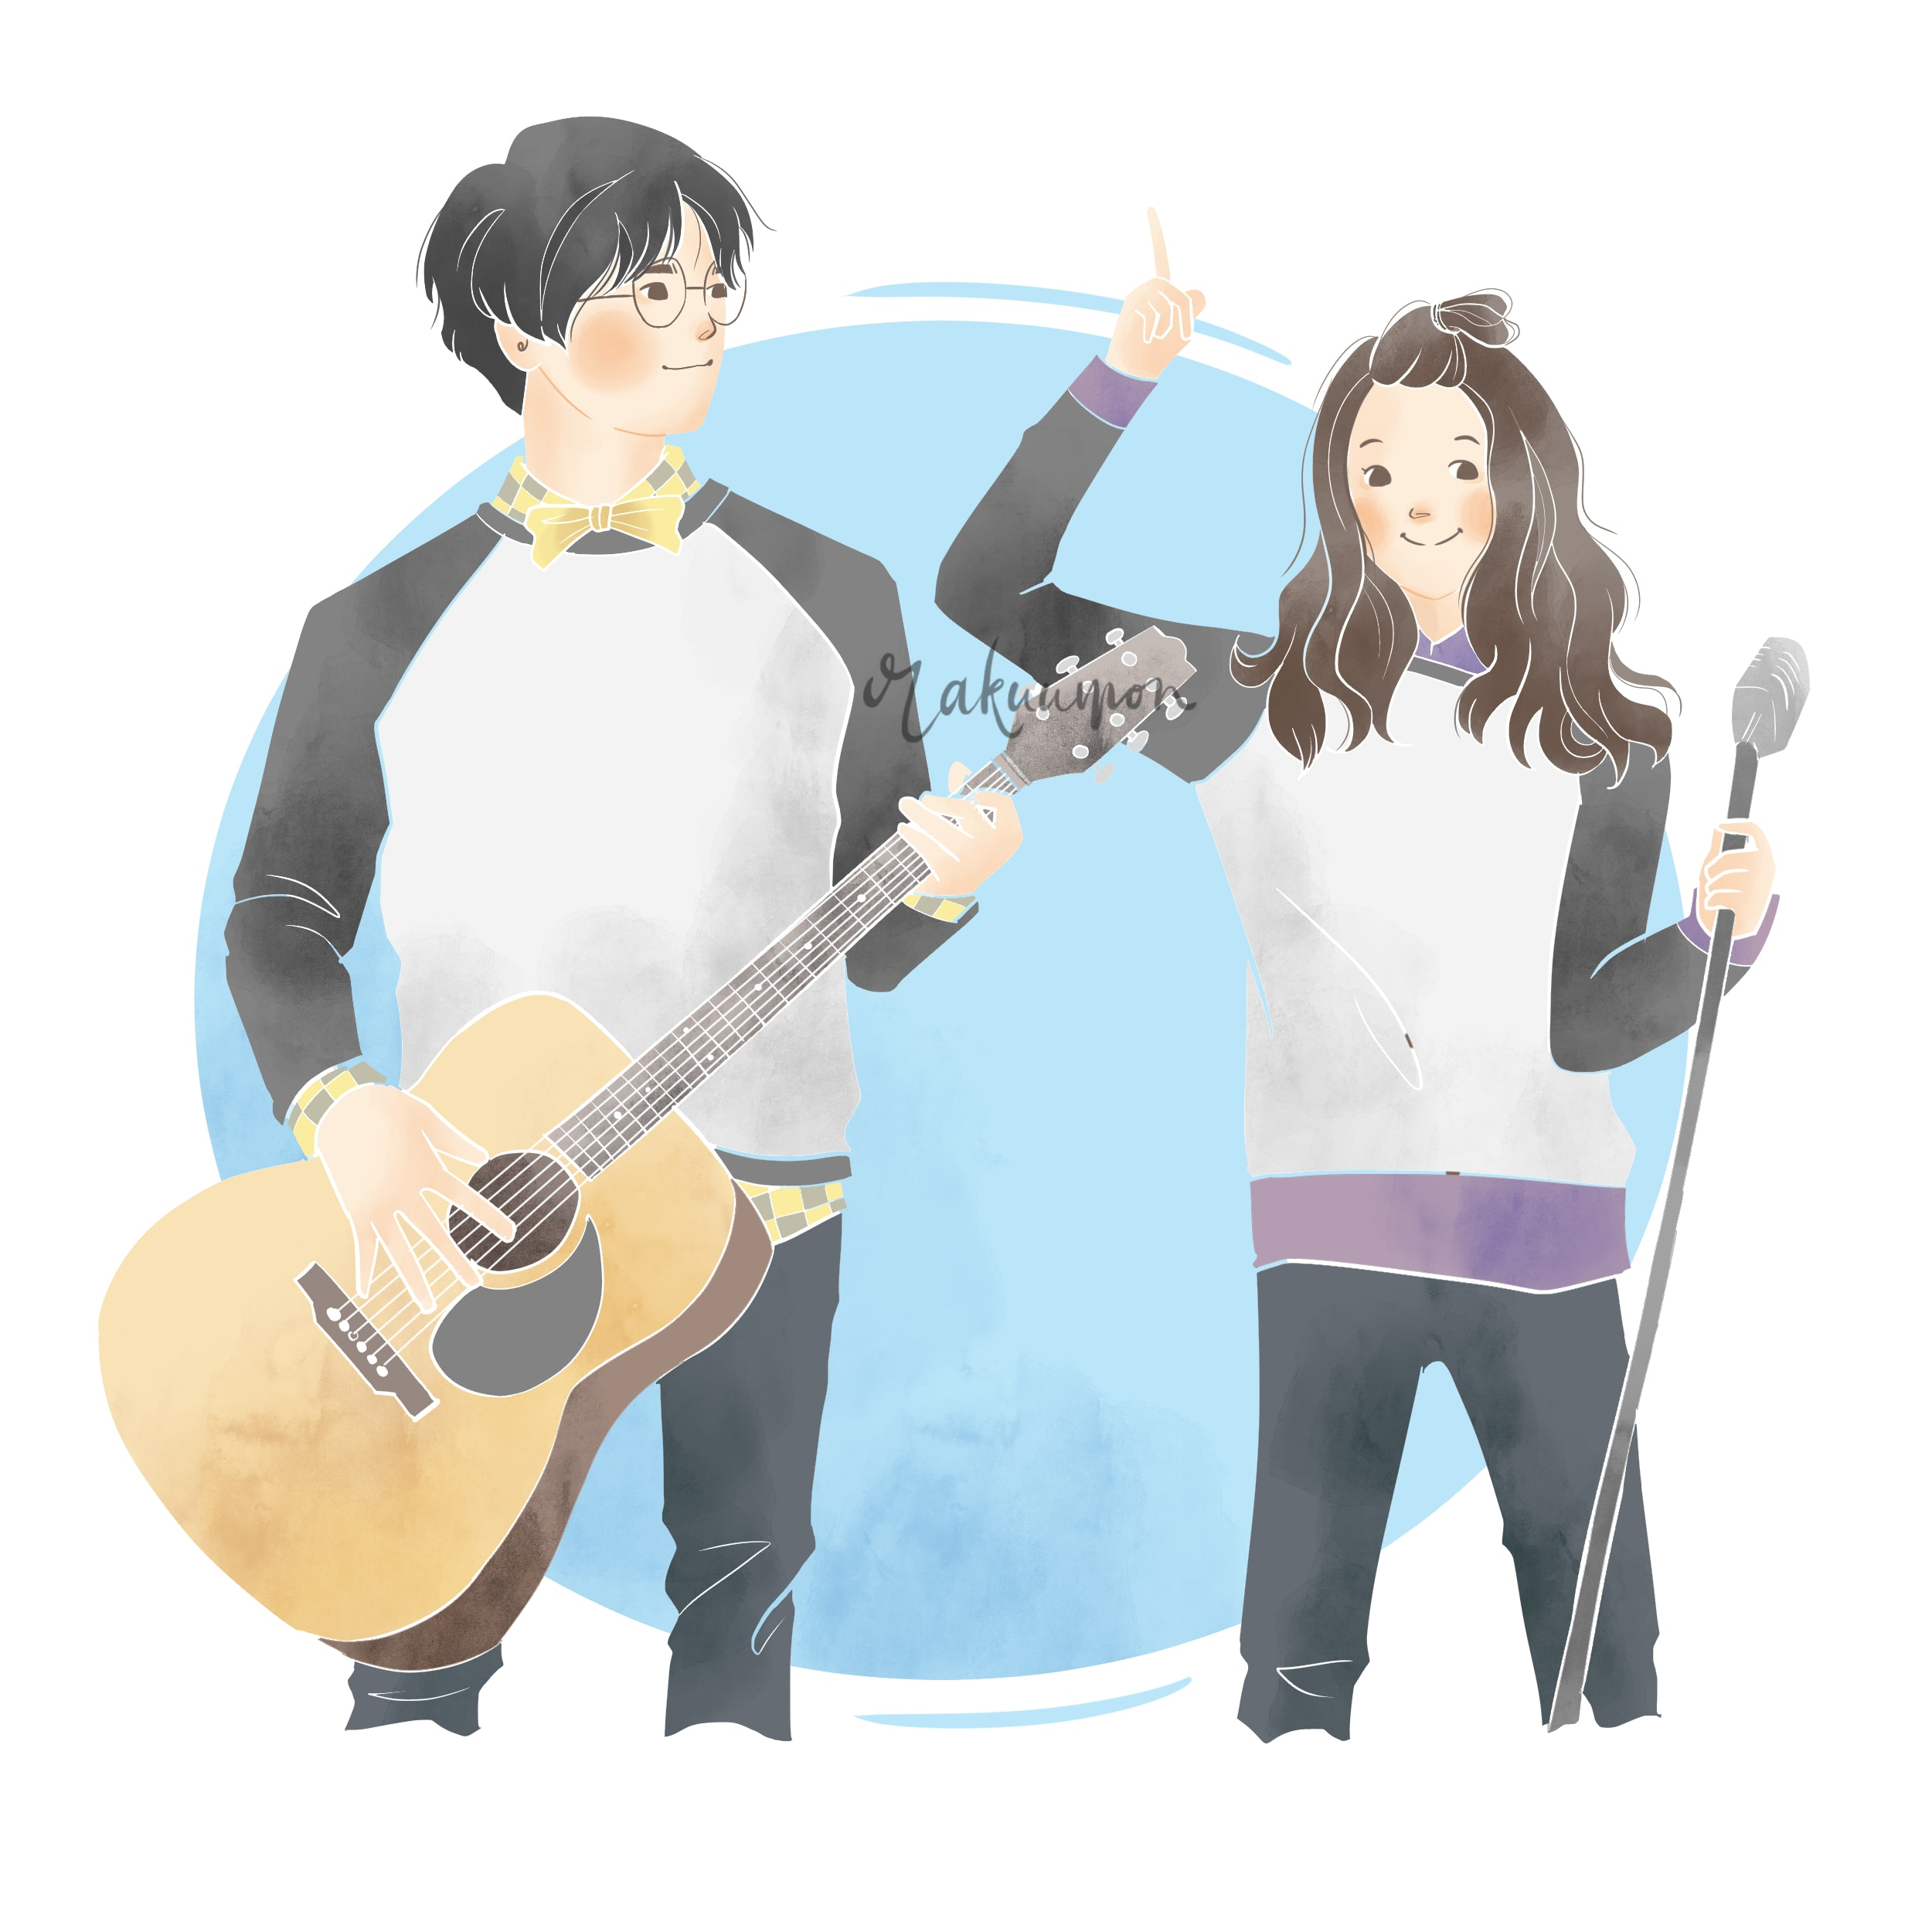 Draw Couple Or Family With Simple Cute Cartoon Style By Rakuumon